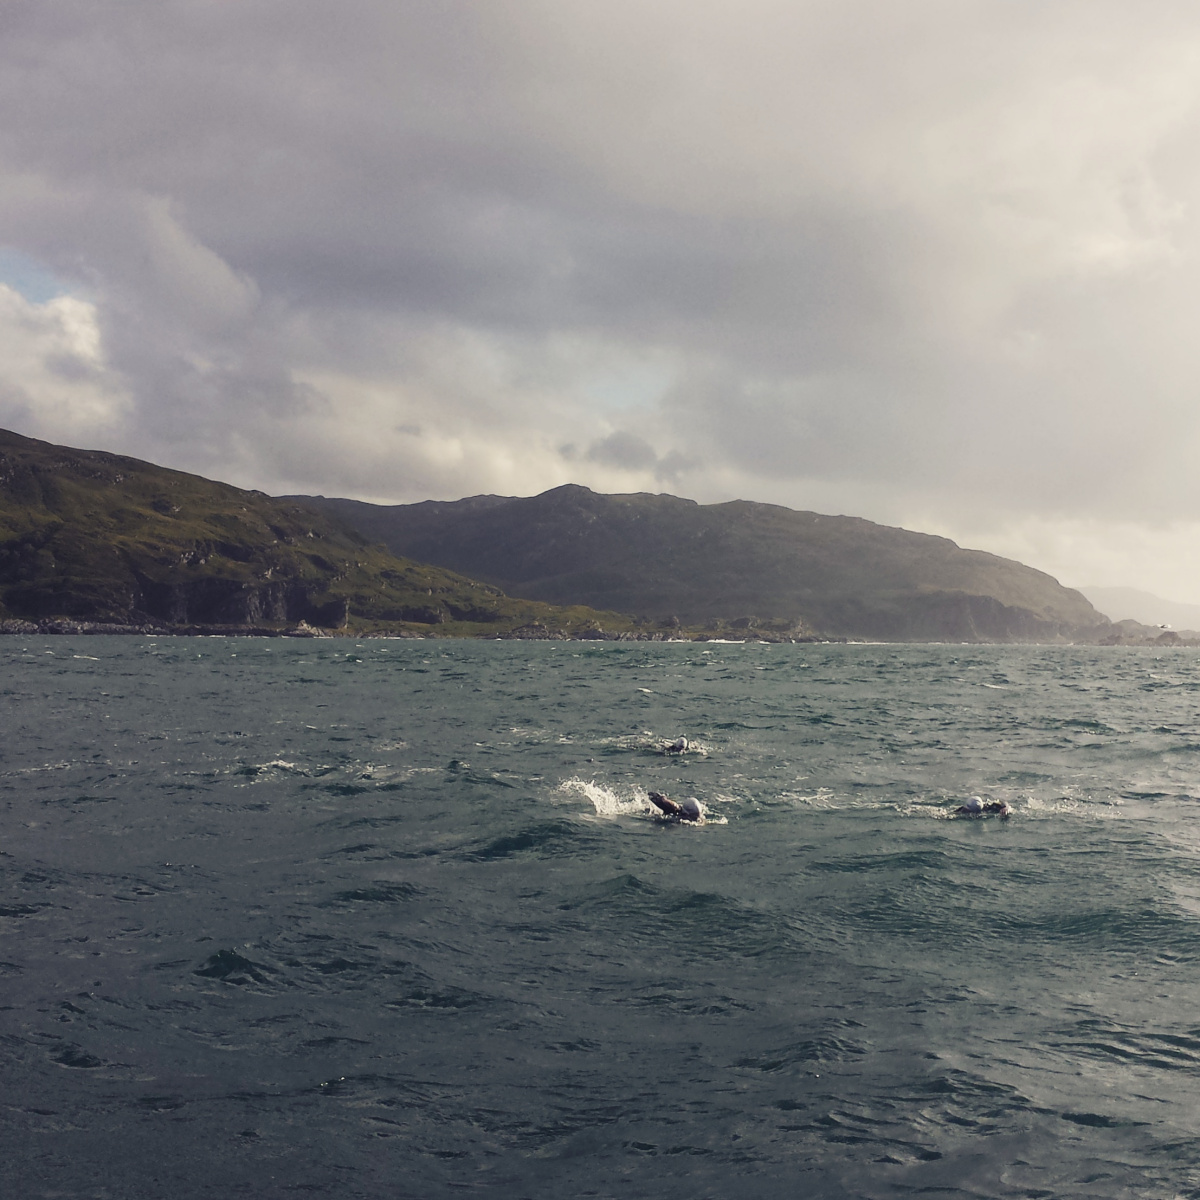 Crossing the Corryvreckan together in 2015.